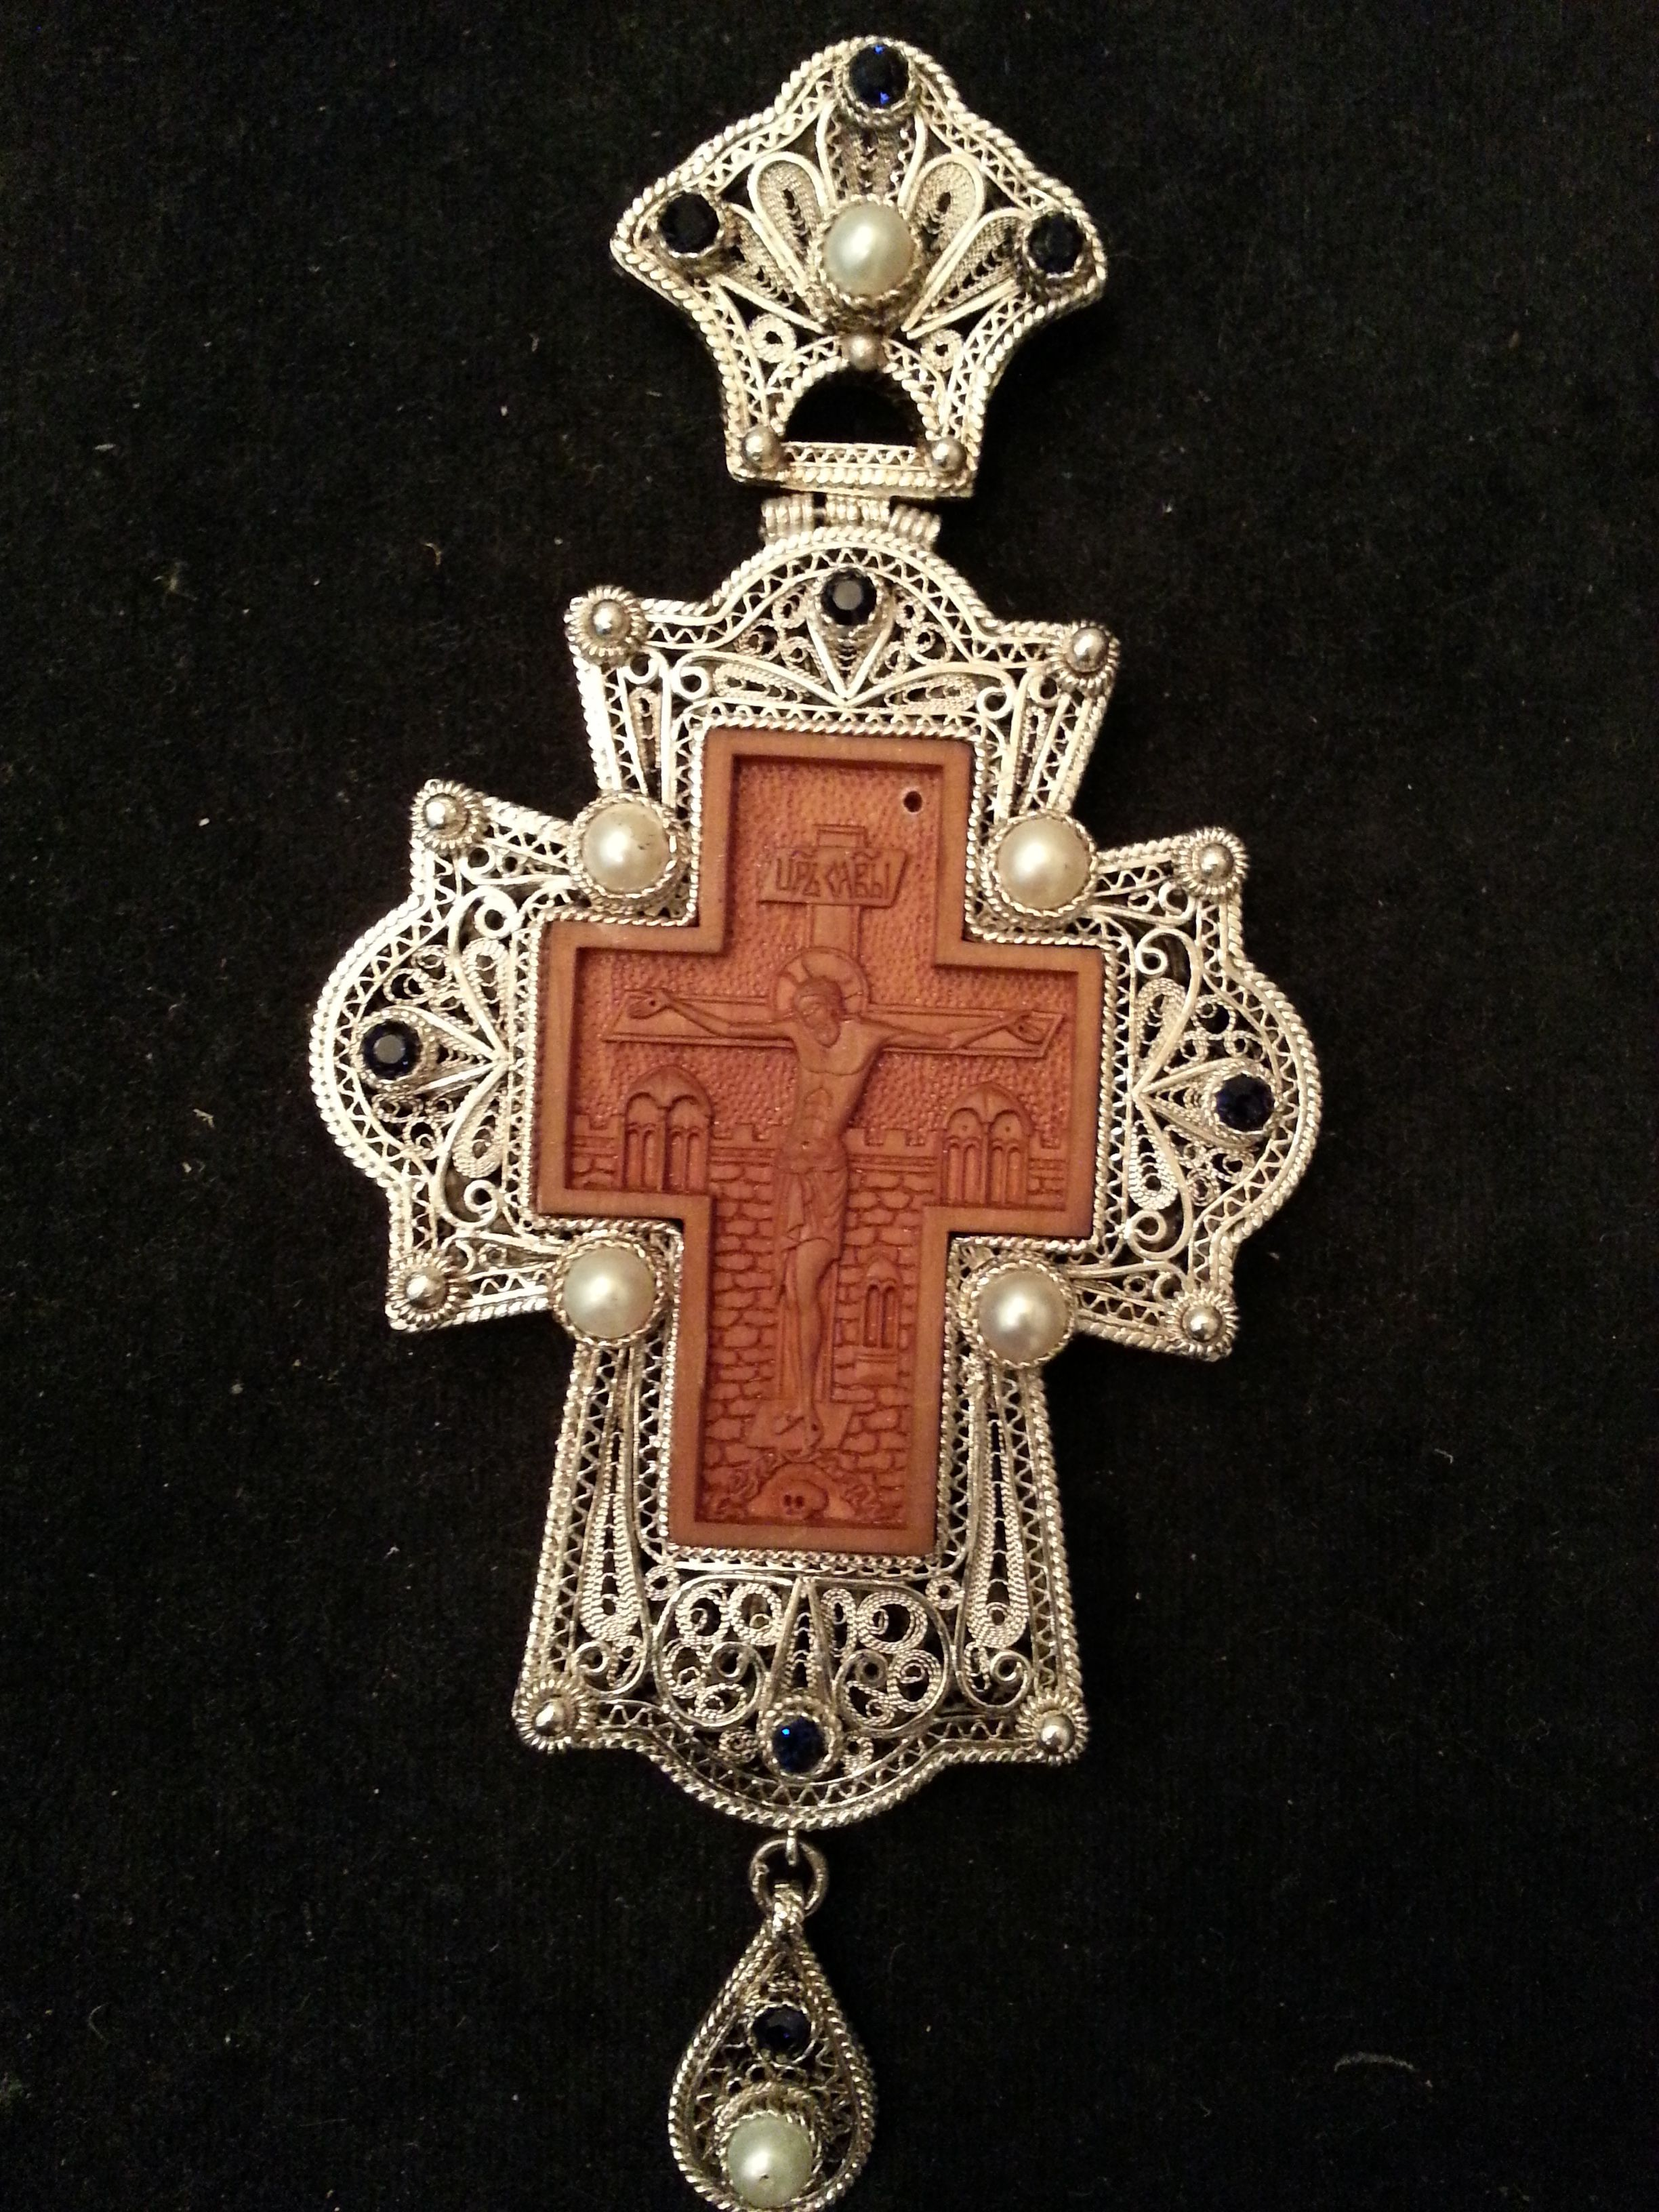 Silver Filigree Pectoral Cross With Miniature Wood Carving Of The